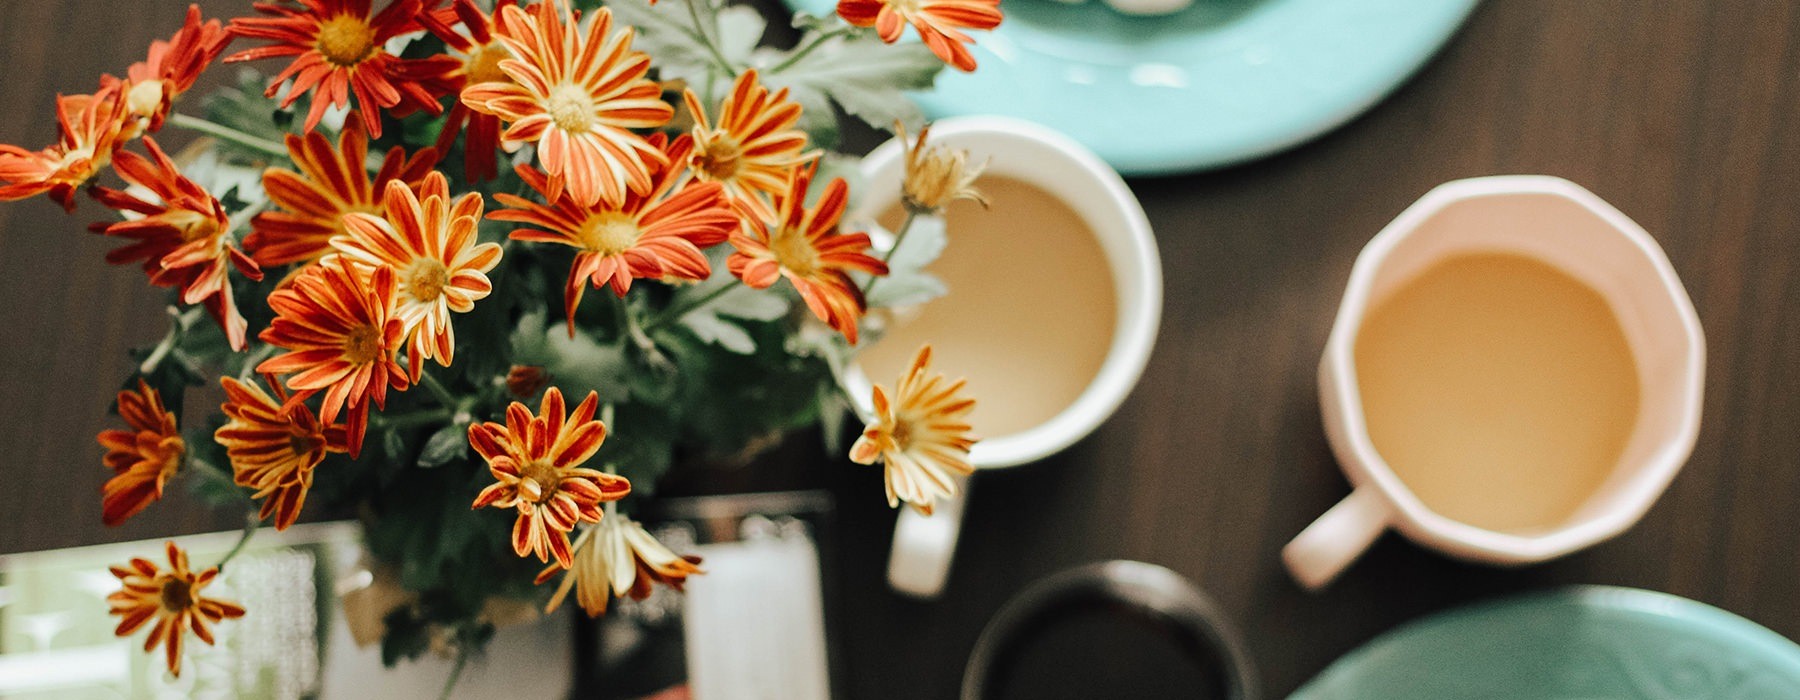 Flowers and coffee on a wood table